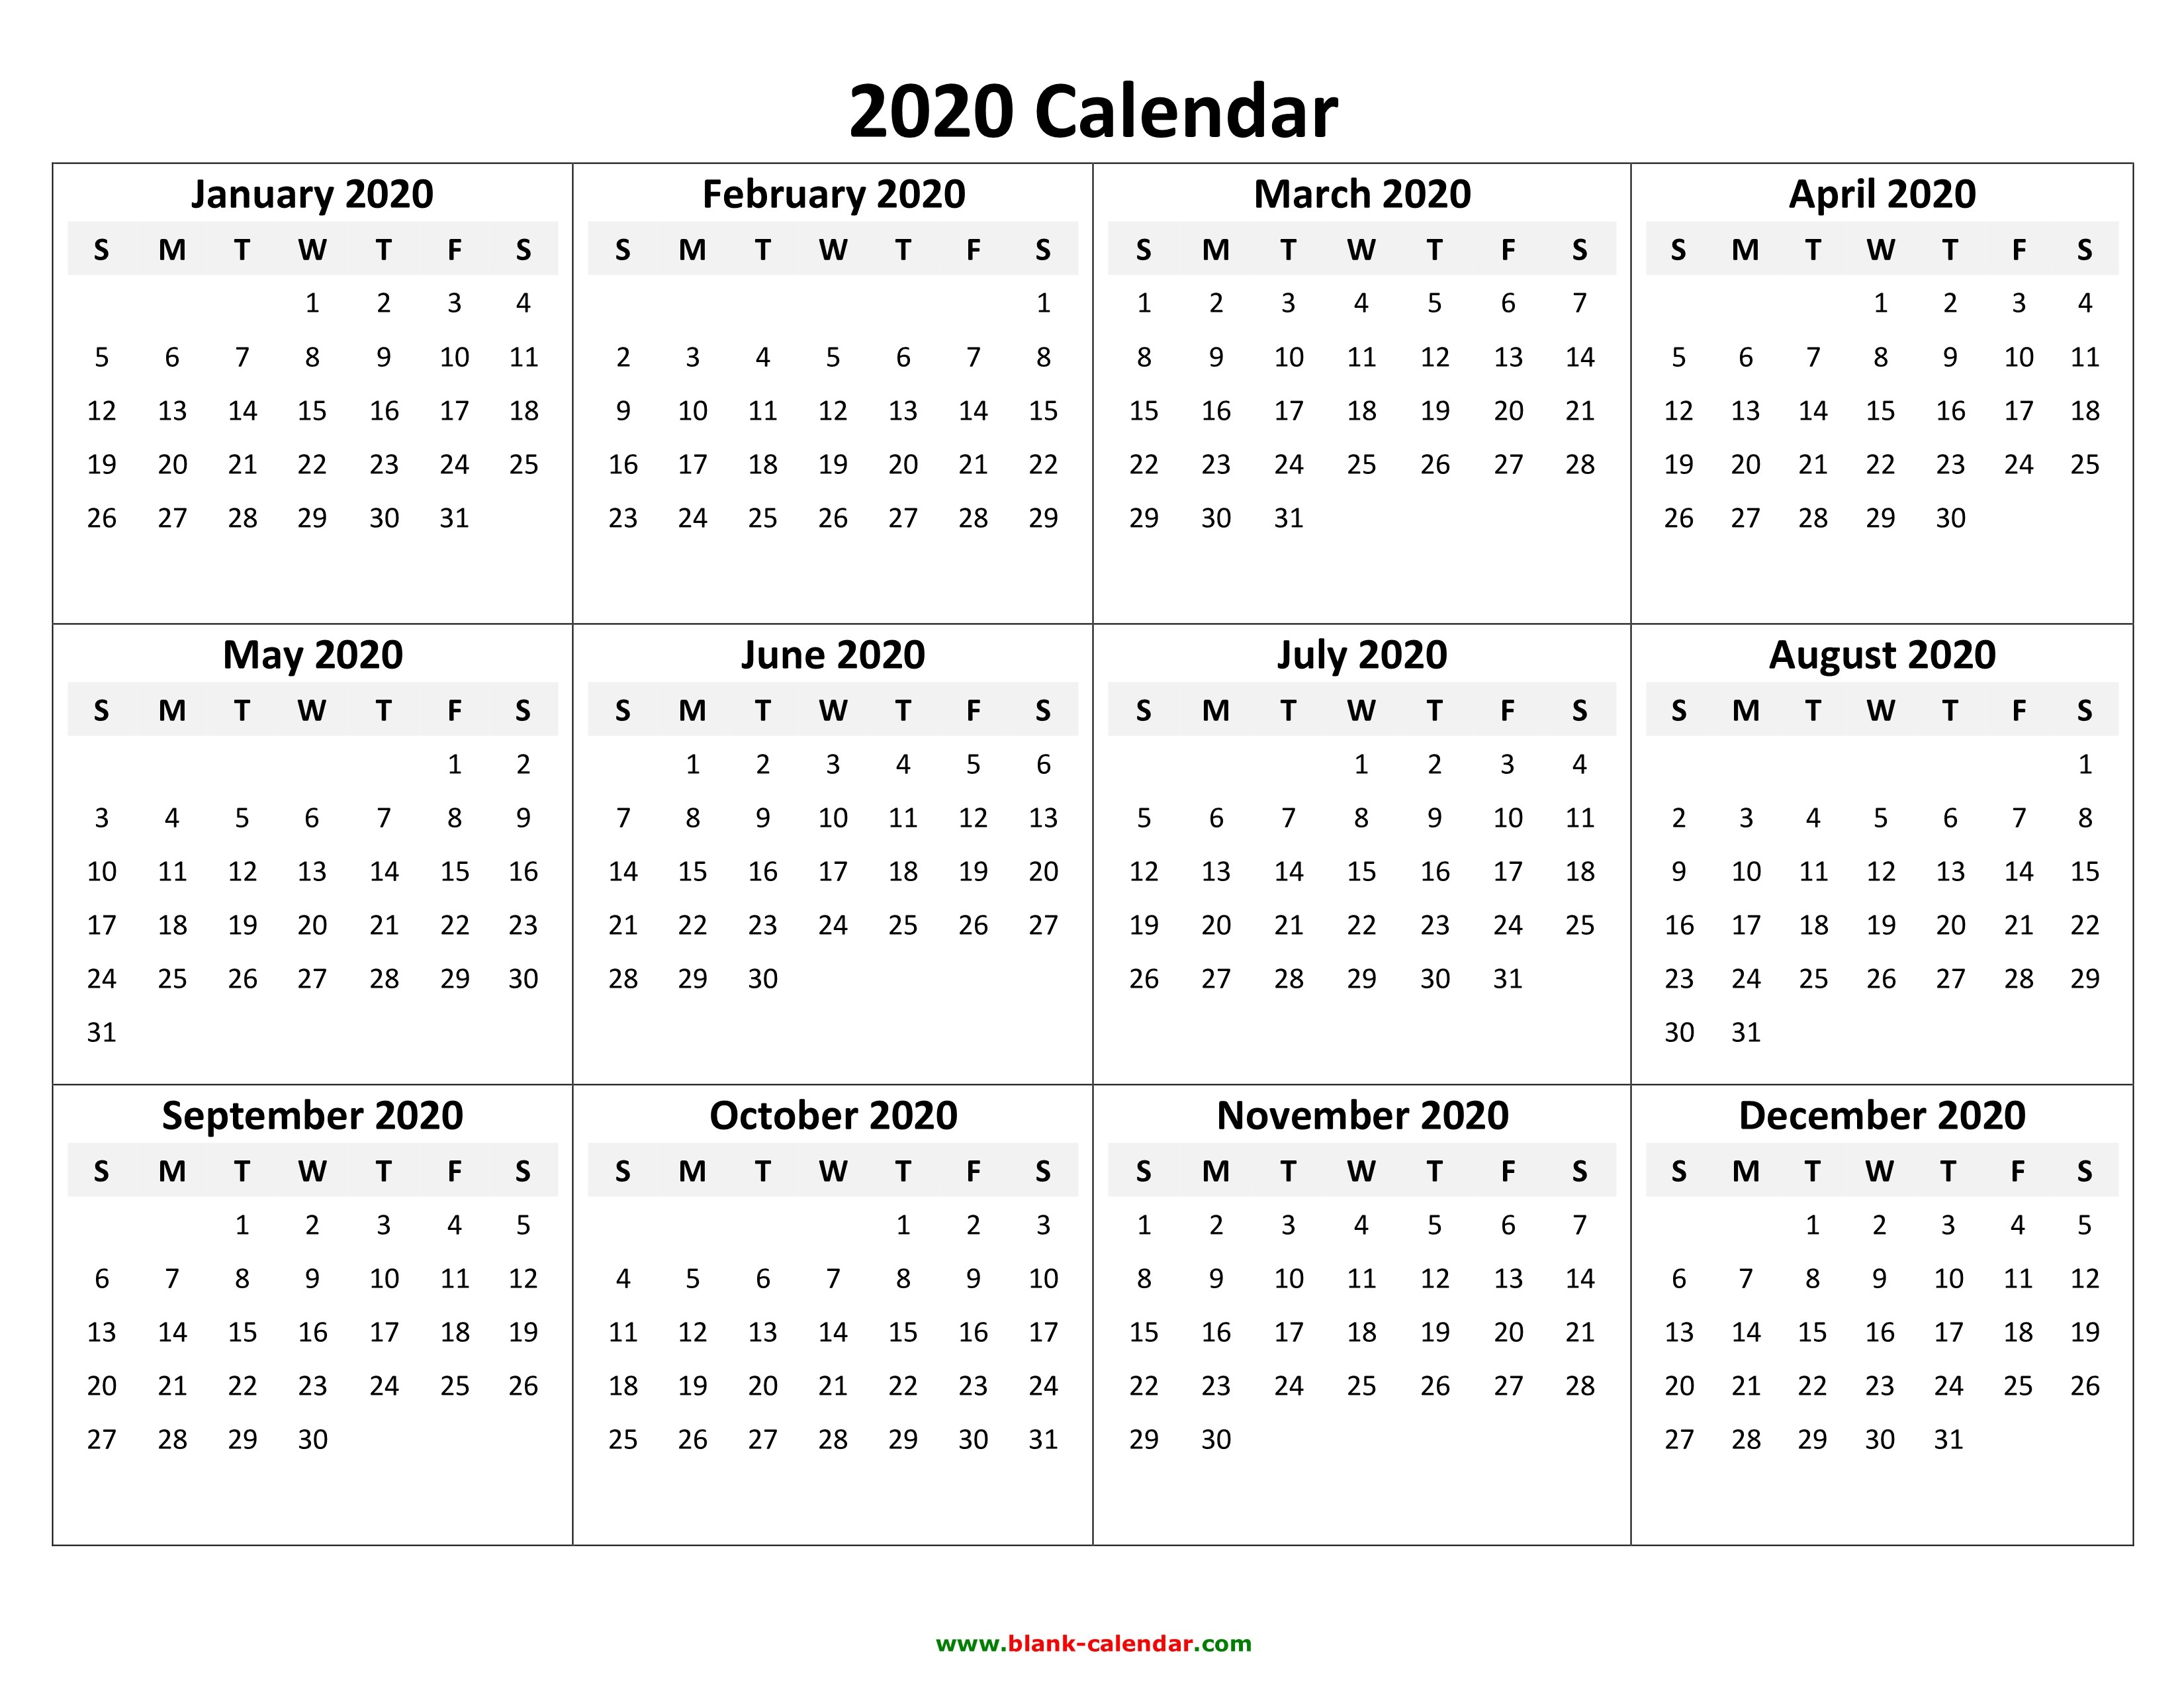 Free Printable Calendar Templates For 2020 Yearly Calendar 2020 inside Free Printable Unicorn Calendar 2019-2020